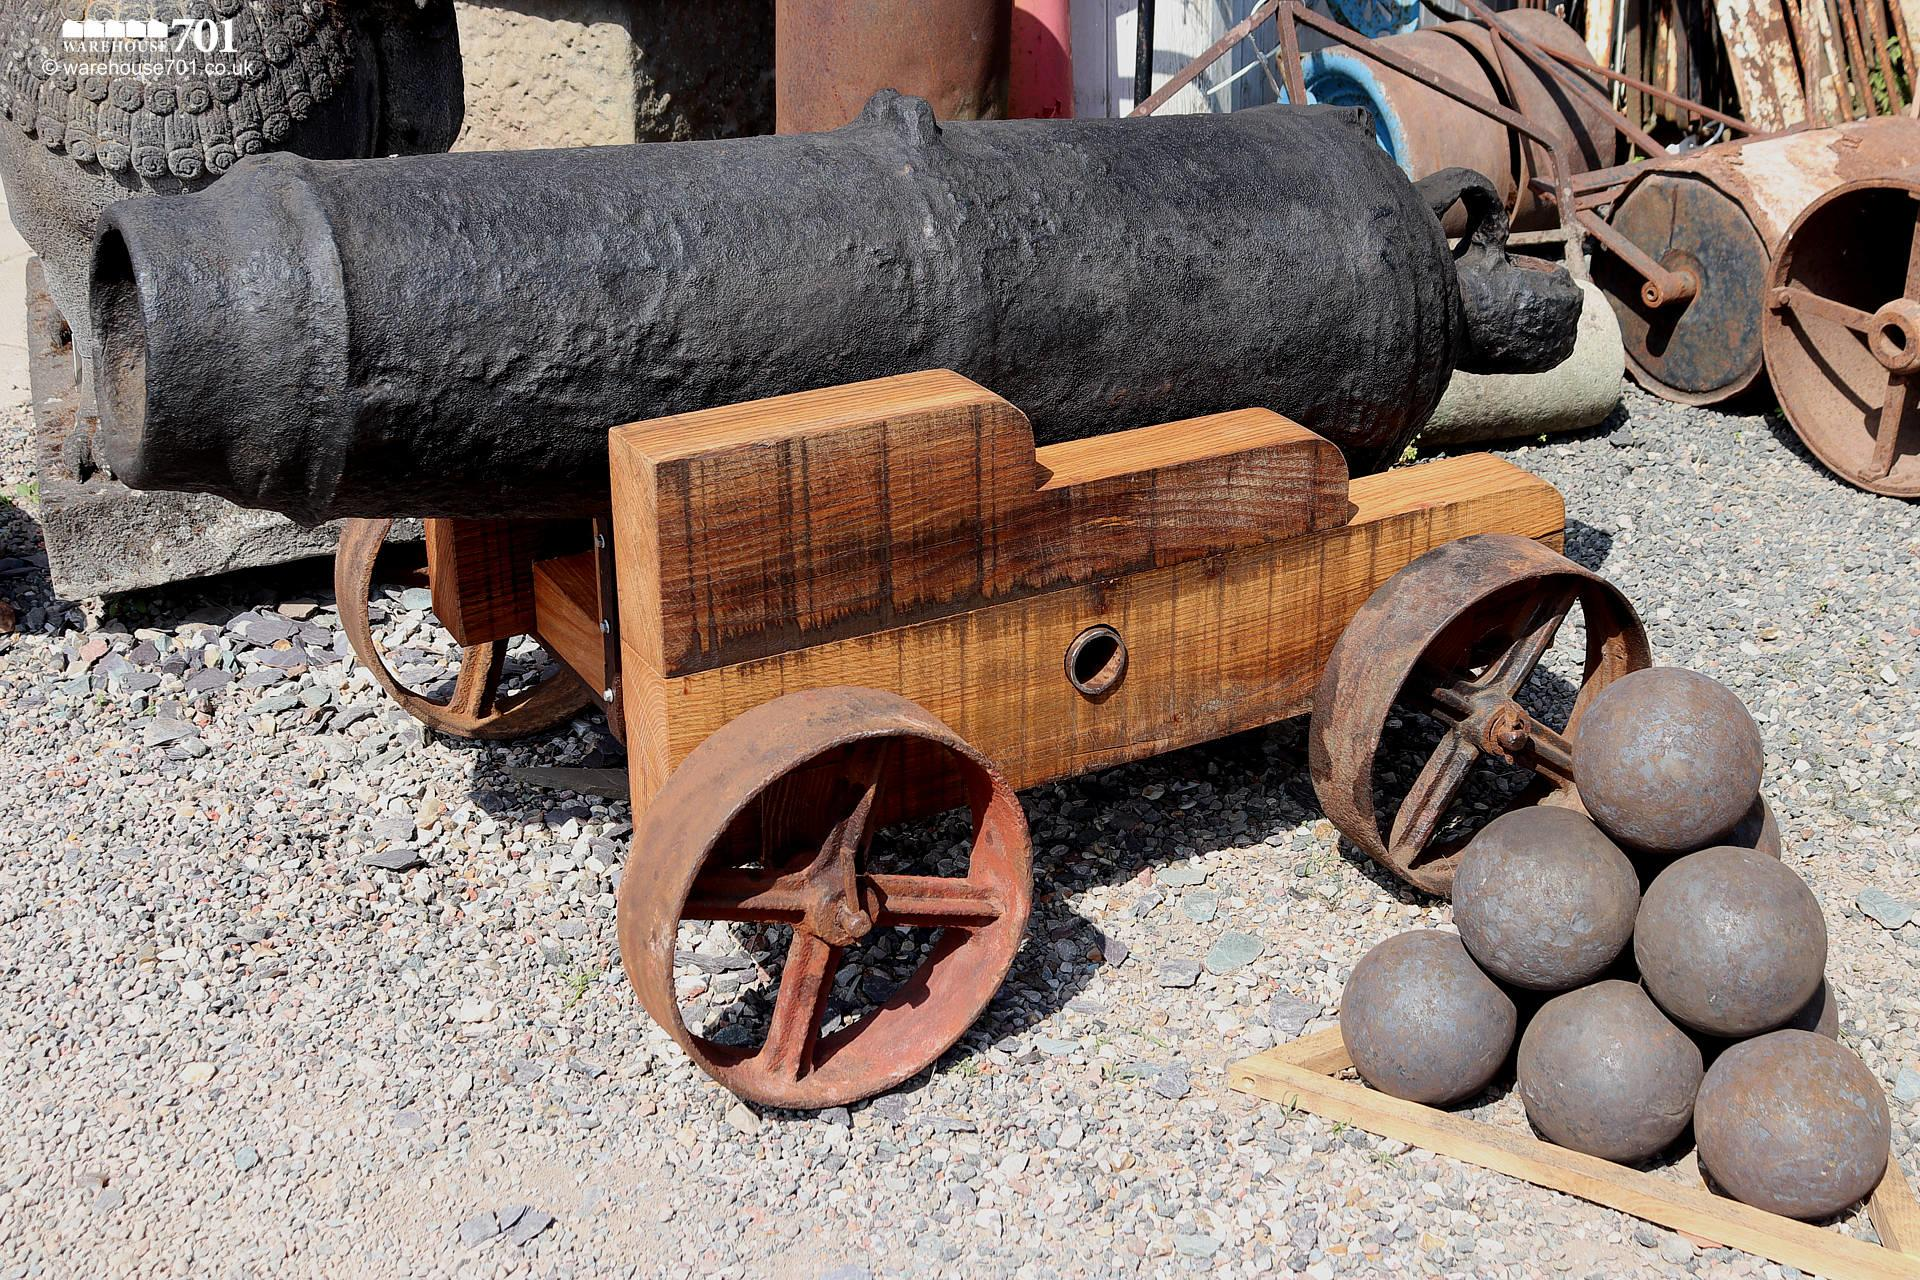 Fabulous Large Ocean-Salvaged Maritime 69lb Carronade Cannon on Carriage #3